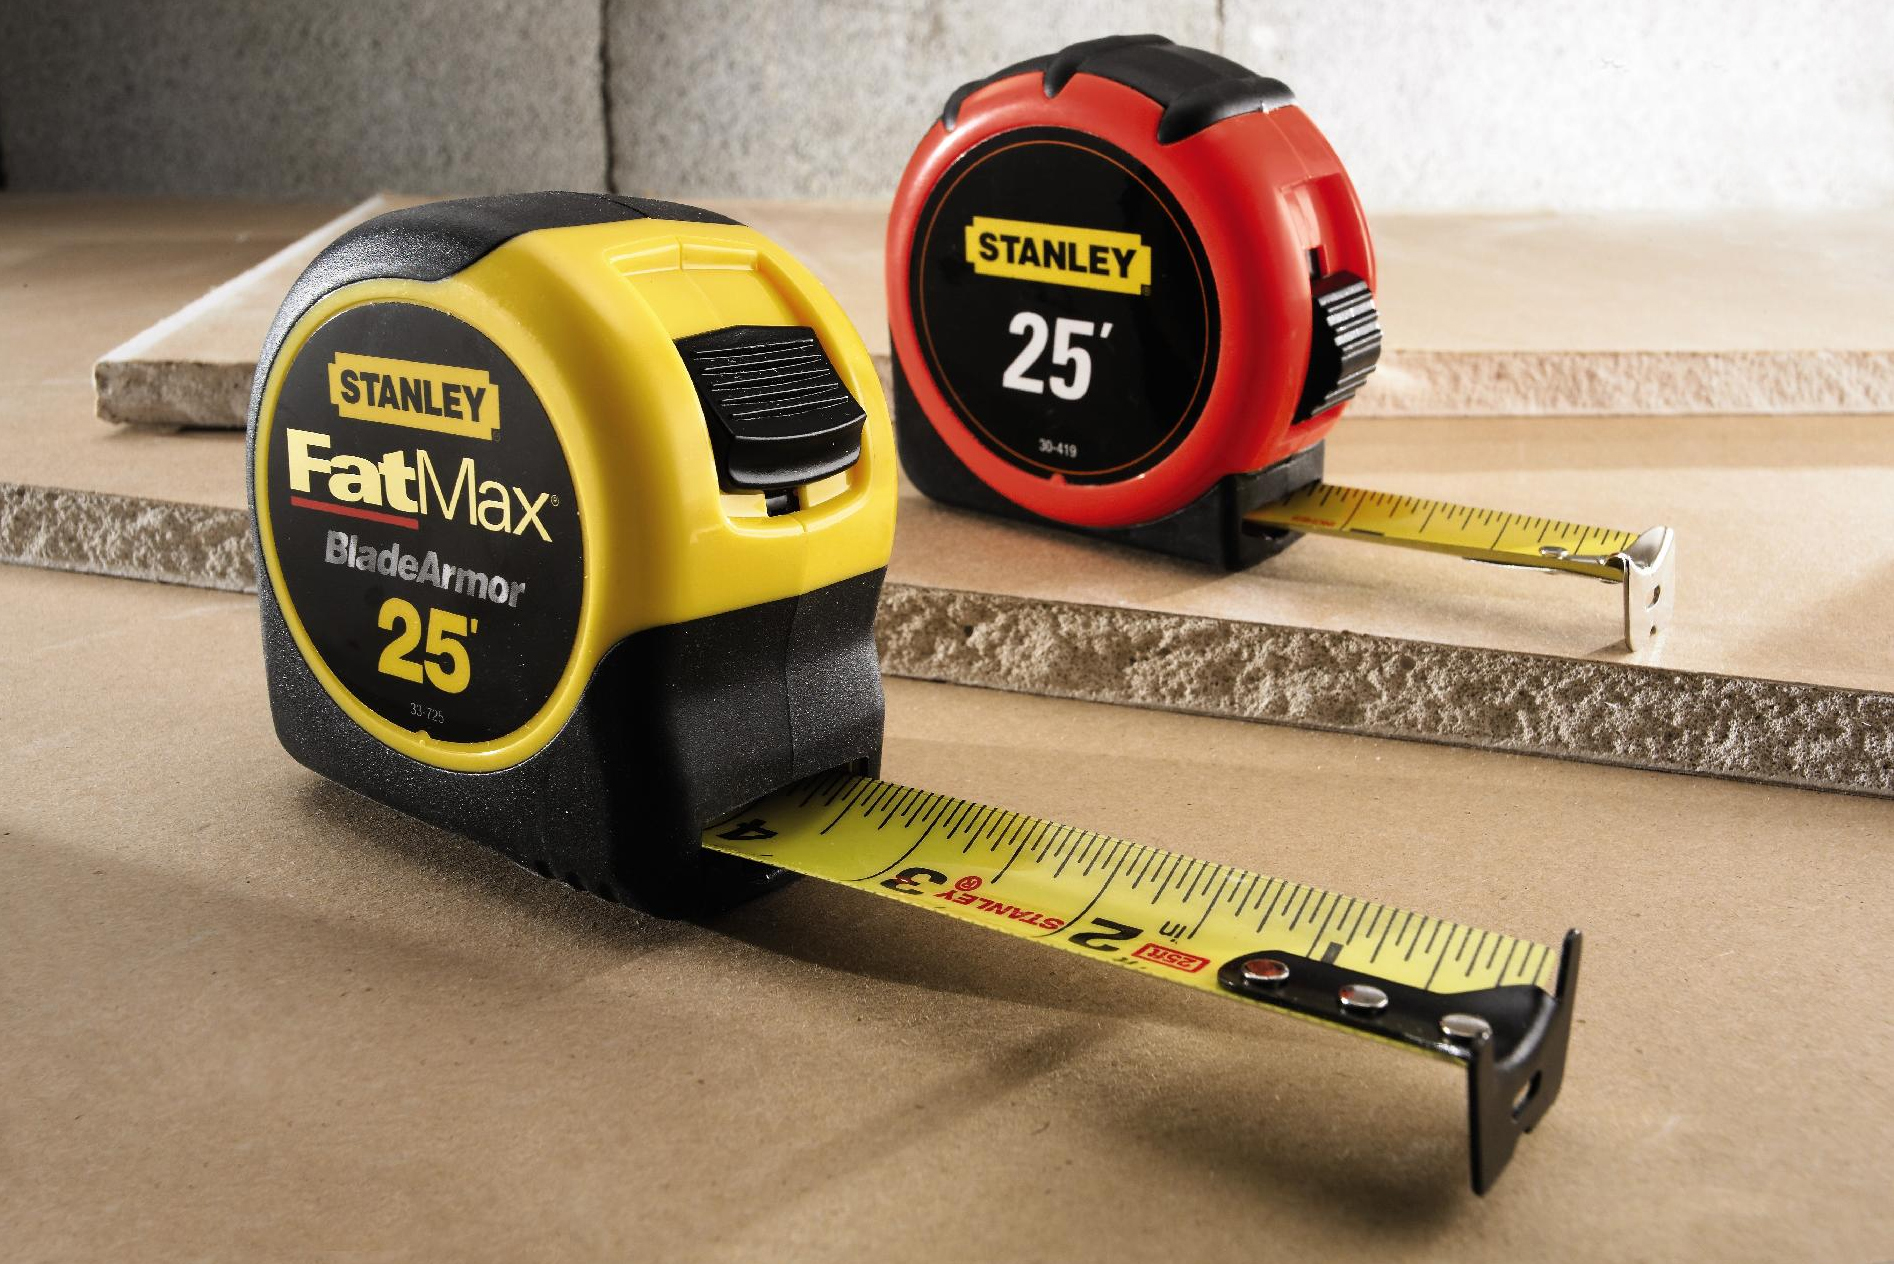 Stanley 1-1/4 in. x 25 ft. Steel Measuring Tape